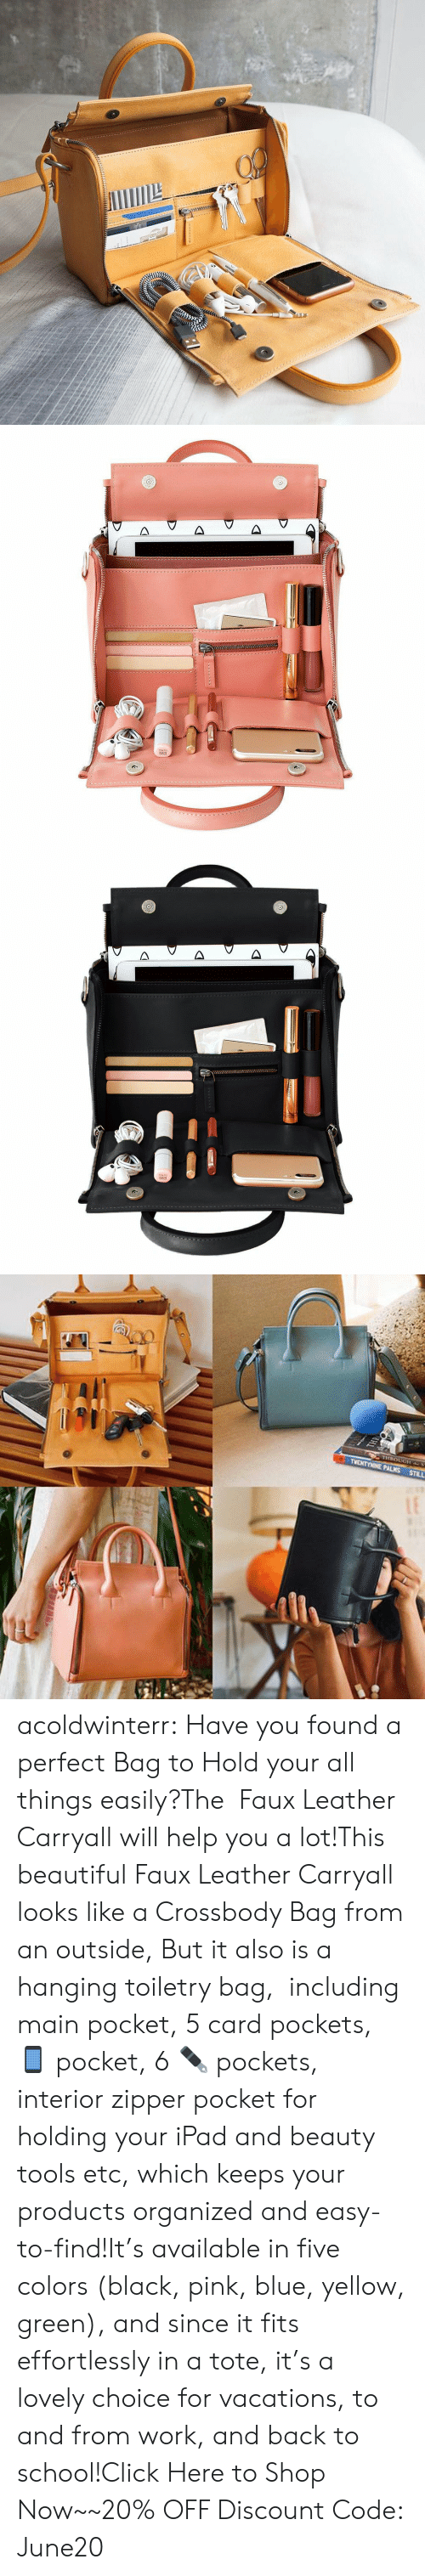 organized: соз acoldwinterr:  Have you found a perfect Bag to Hold your all things easily?The Faux Leather Carryall will help you a lot!This beautiful Faux Leather Carryall looks like a Crossbody Bag from an outside, But it also is a hanging toiletry bag, including main pocket, 5 card pockets, 📱 pocket, 6 ✒️ pockets, interior zipper pocket for holding your iPad and beauty tools etc, which keeps your products organized and easy-to-find!It's available in five colors (black, pink, blue, yellow, green), and since it fits effortlessly in a tote, it's a lovely choice for vacations, to and from work, and back to school!Click Here to Shop Now~~20% OFF Discount Code: June20